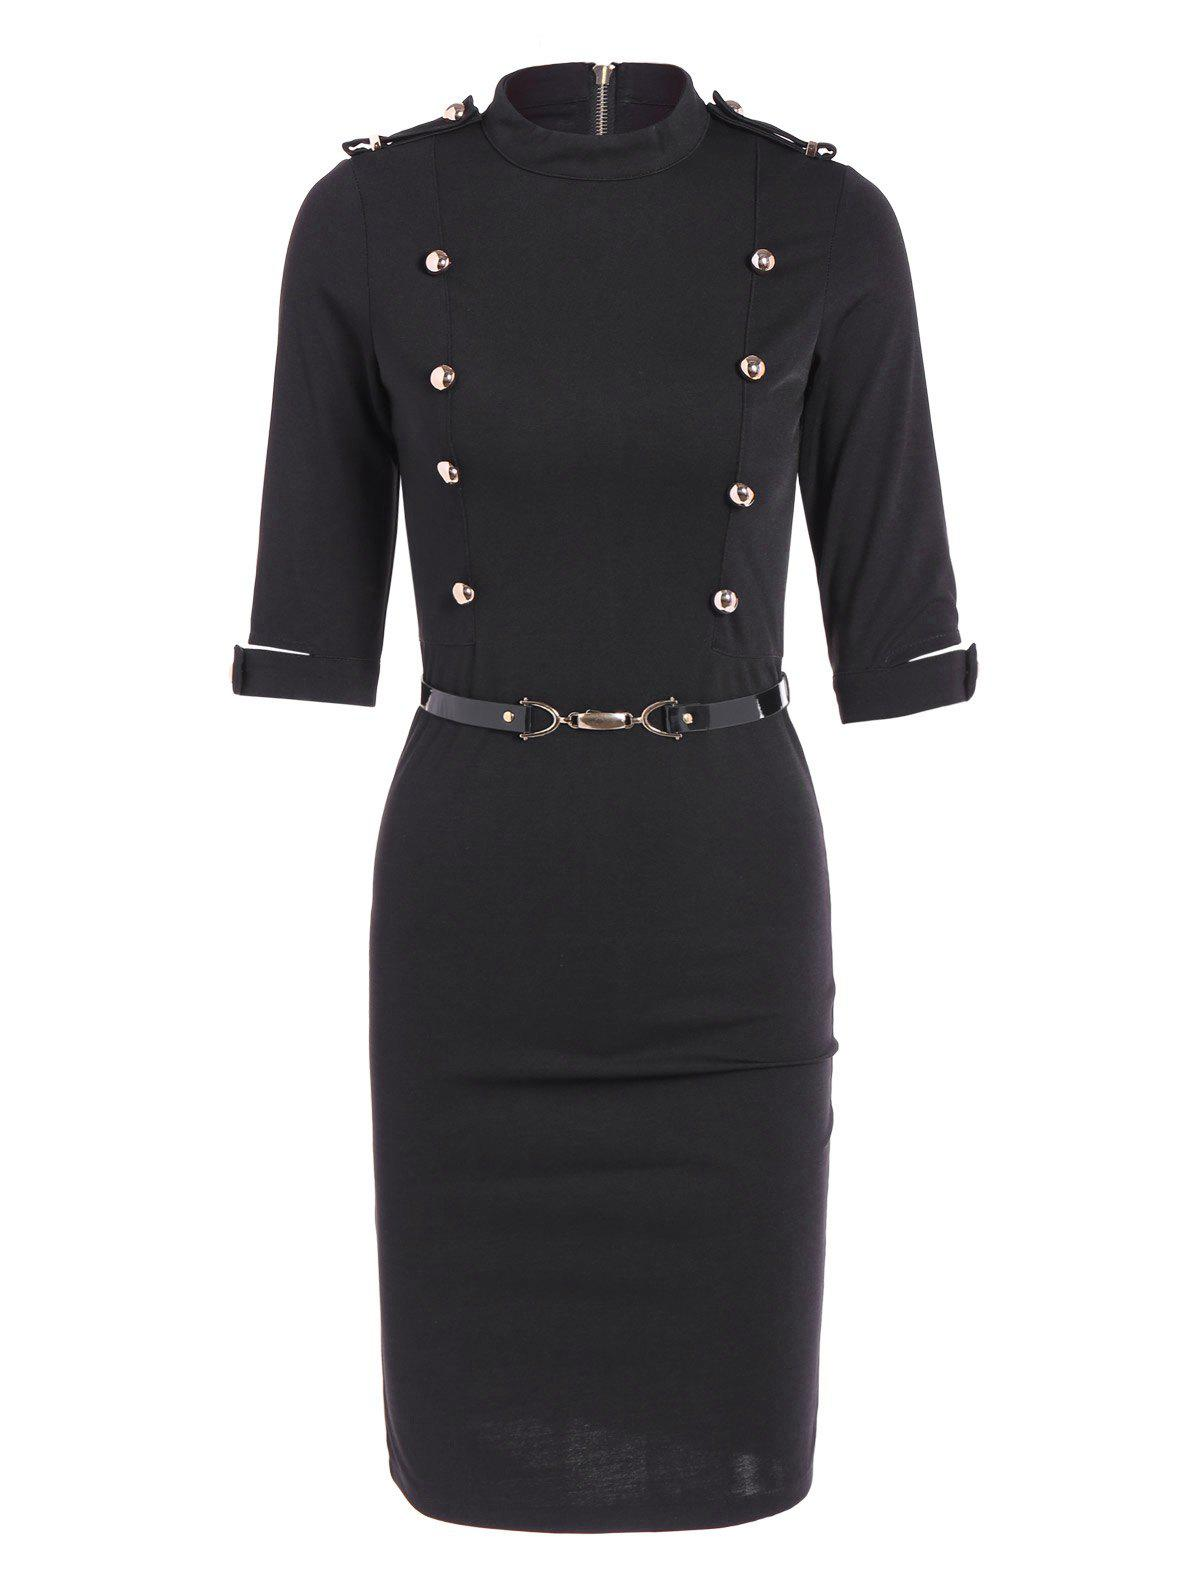 Buttoned Belted Bodycon Sheath Dress - BLACK L